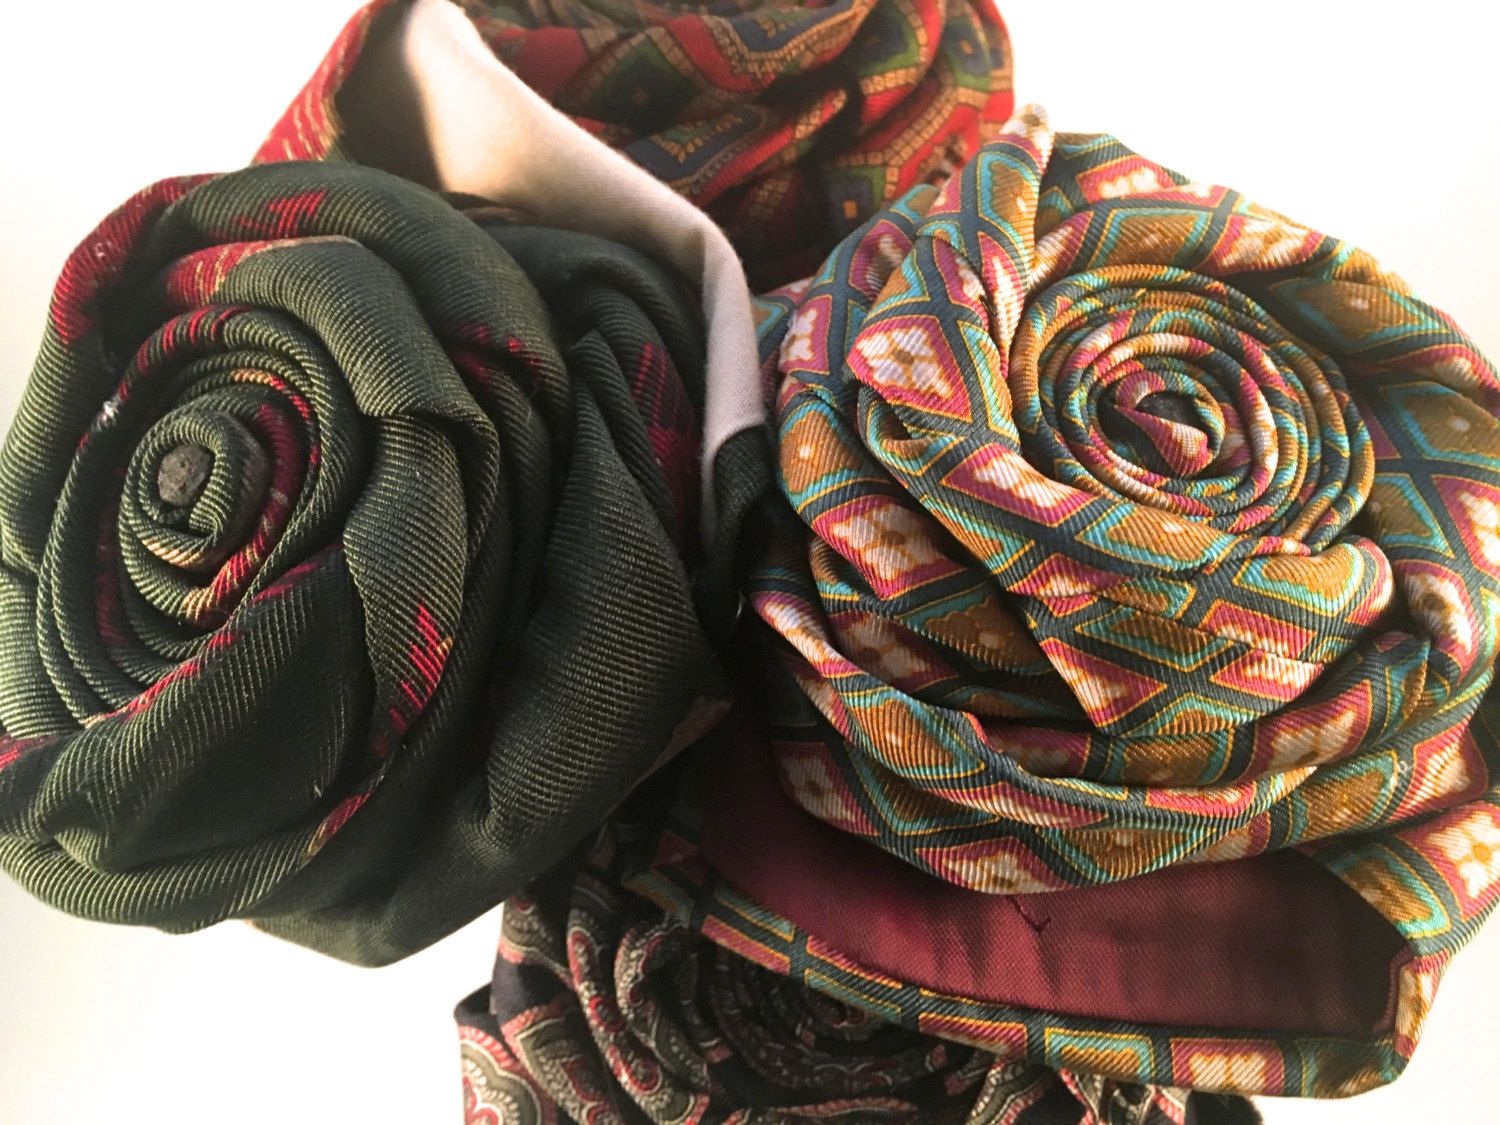 Bouquet of 7 Upcycled Necktie Flowers, Tie Flowers, Fabric Flowers, Home Decor, Father's Day Gift, Unique Wedding Bouquet, Retirement Gift by RemadeByMaria on Etsy